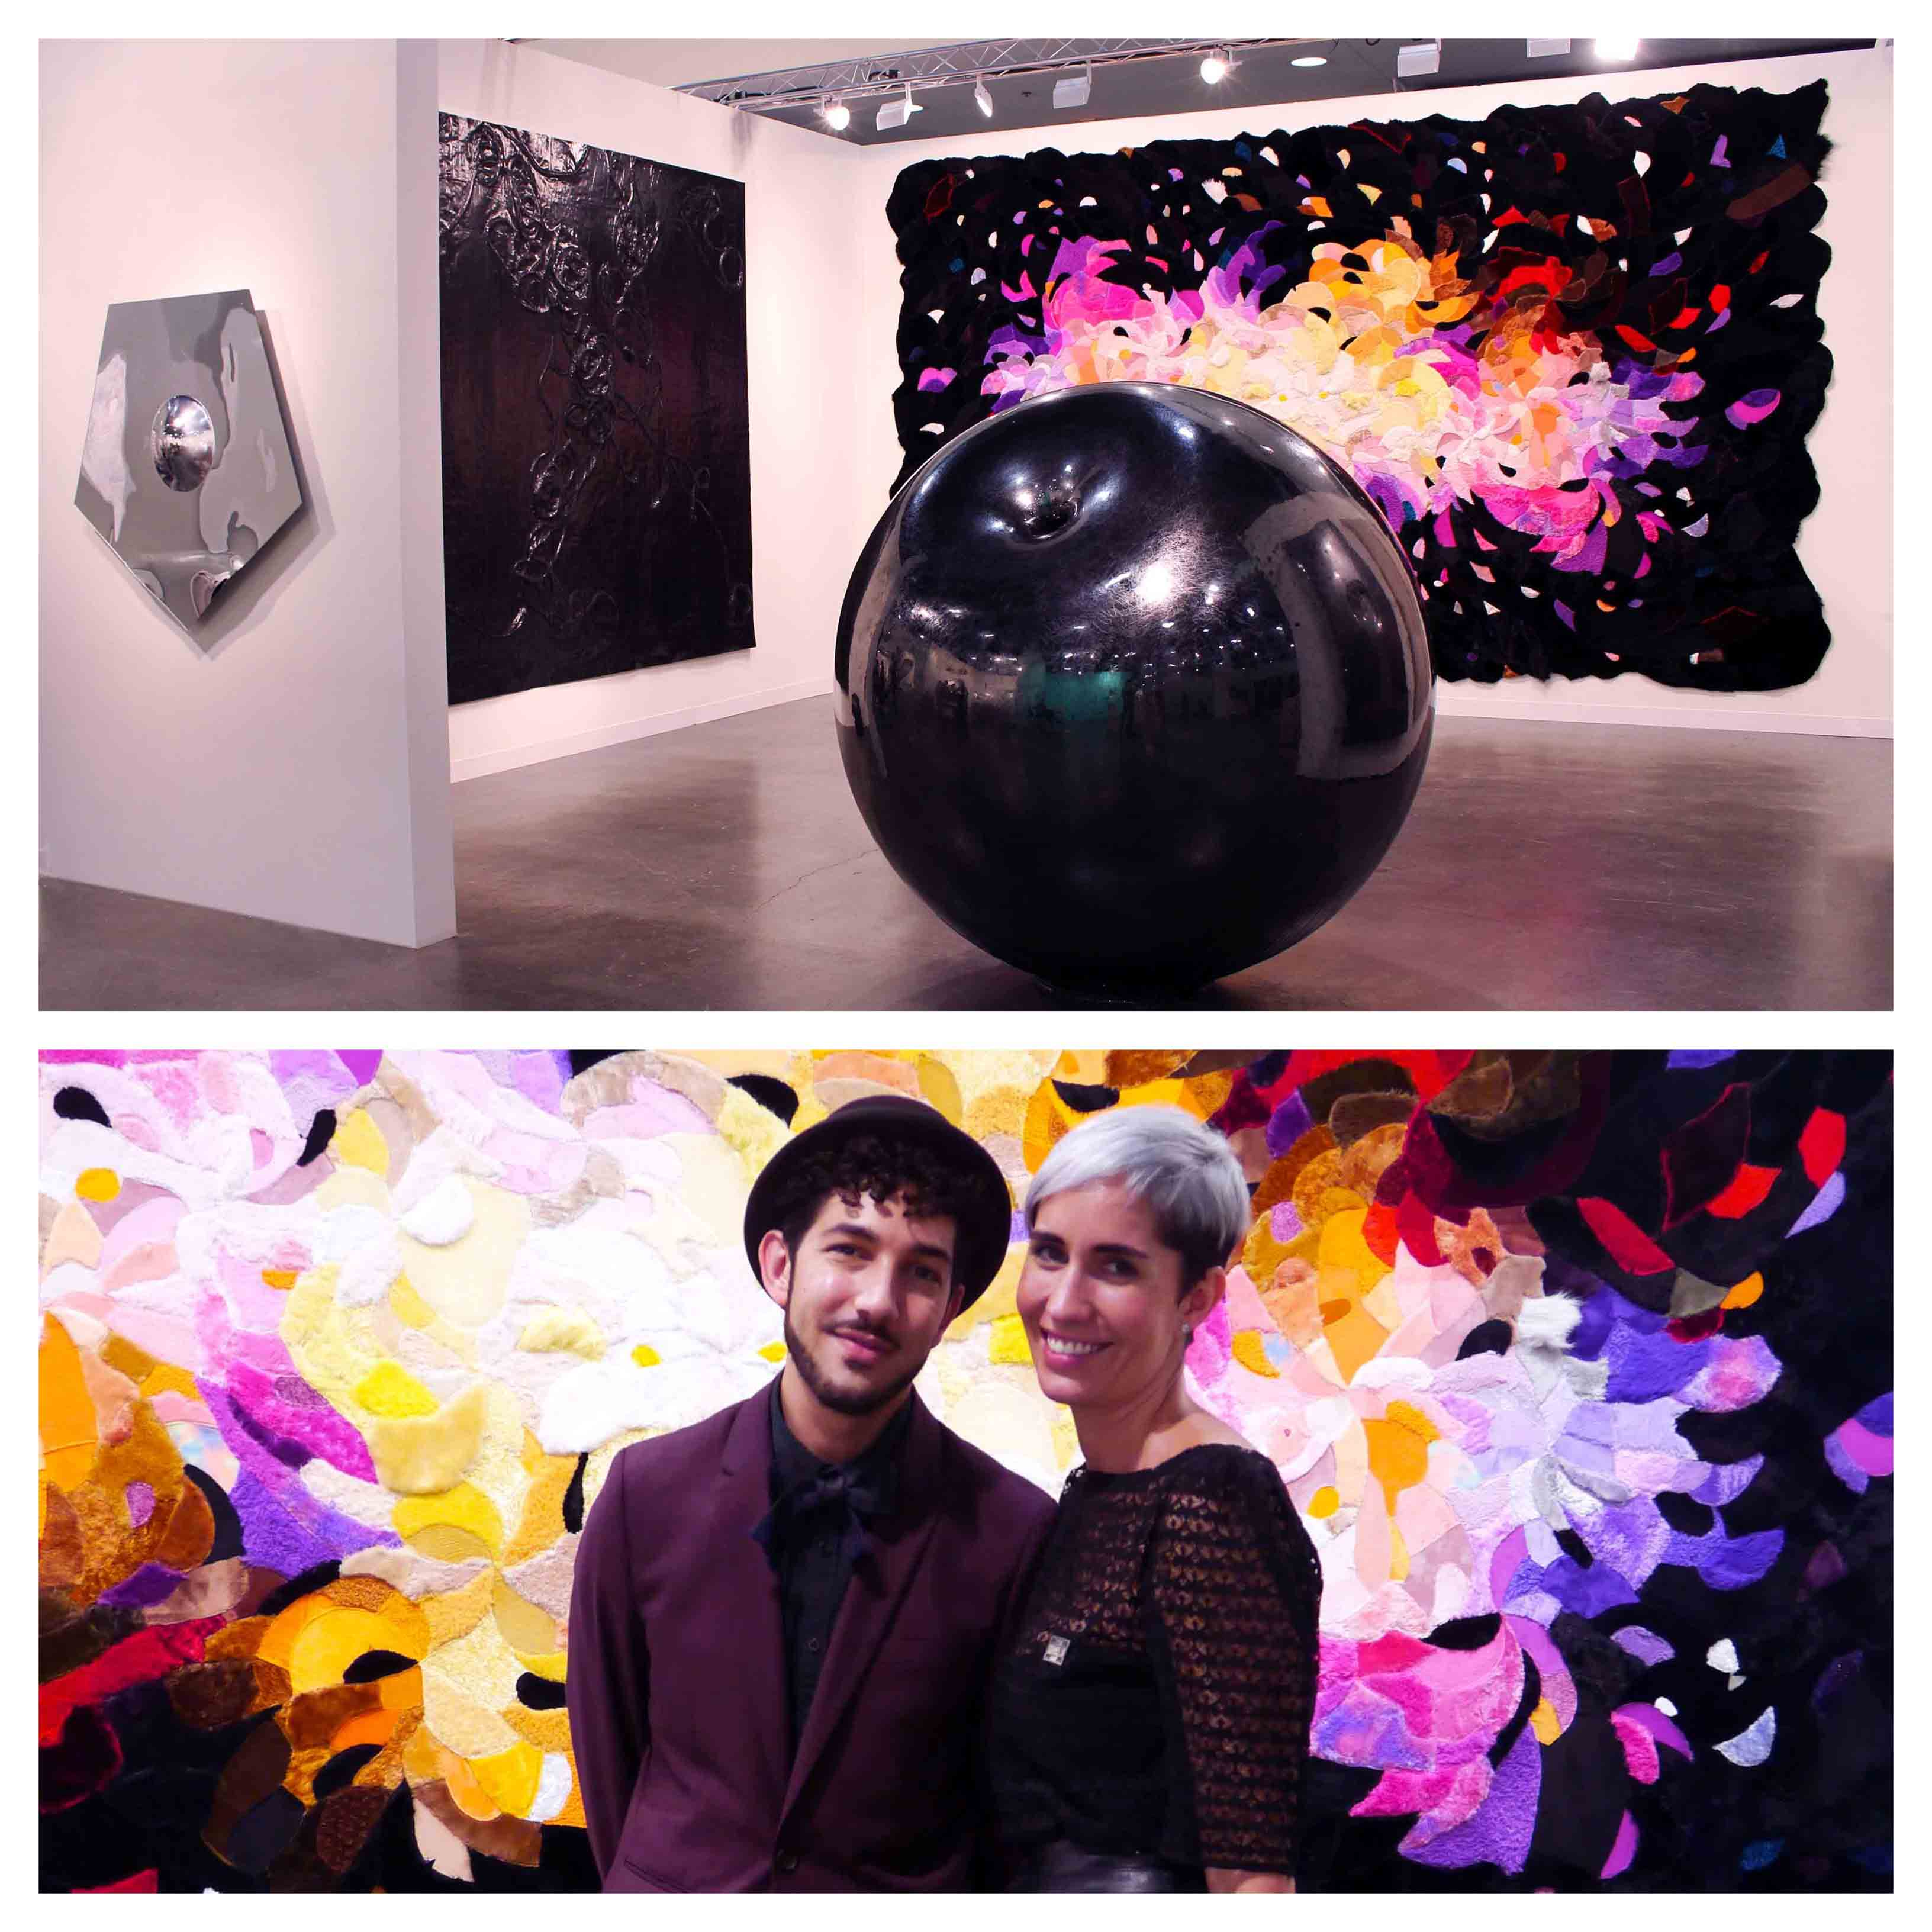 Spinello Projects' Booth, with Anthony Spinello and Marcella Novela